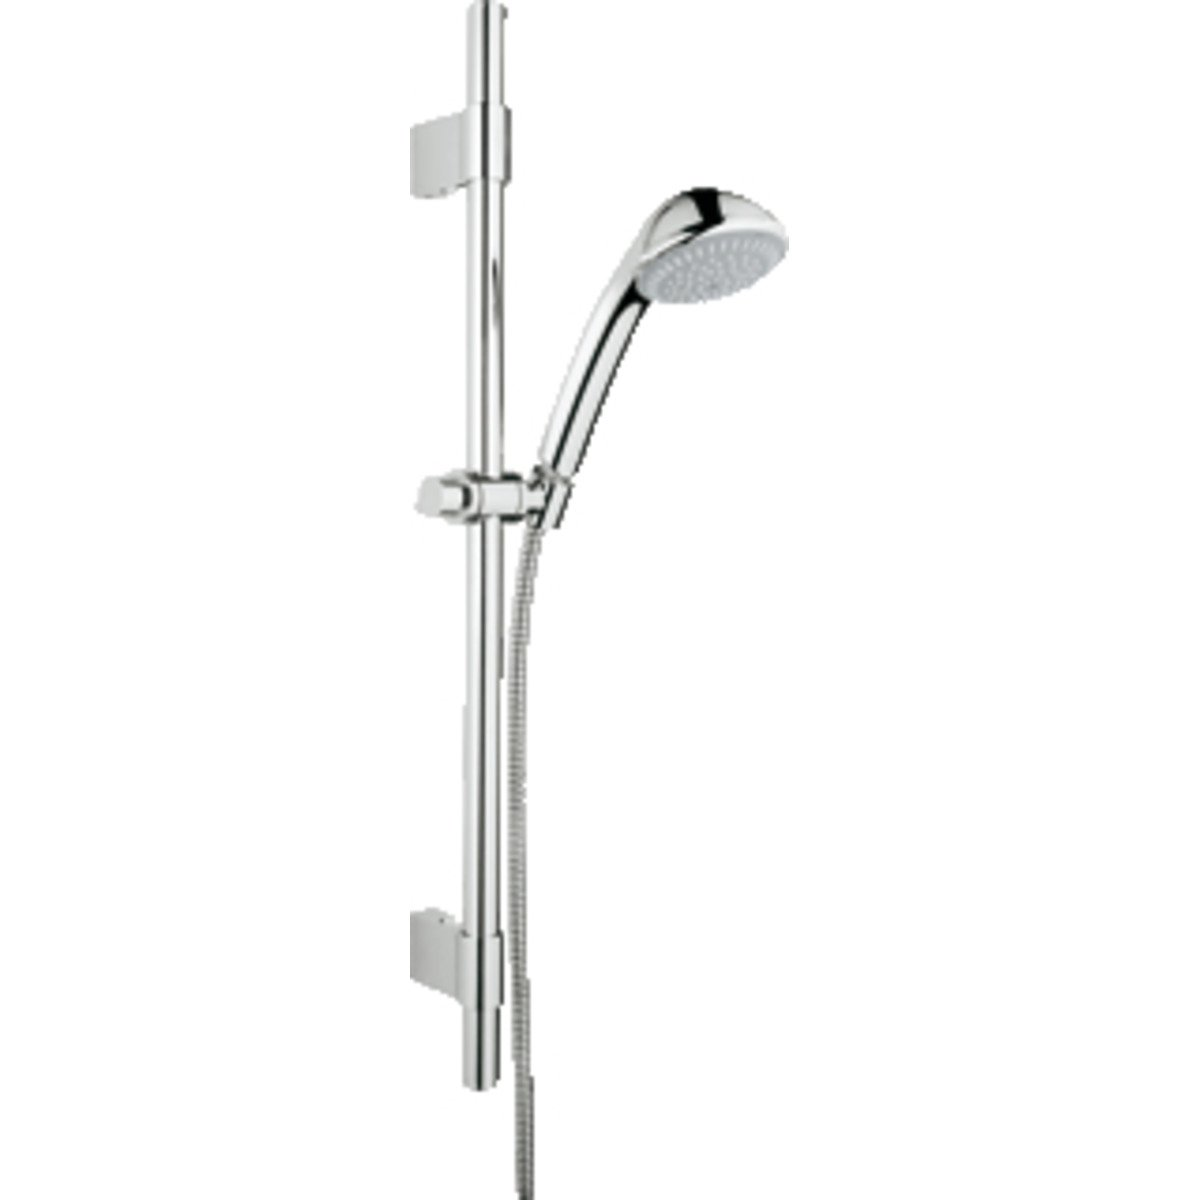 grohe relexa2 ensemble de douche 60cm avec douchette main trio chrome 28942001. Black Bedroom Furniture Sets. Home Design Ideas